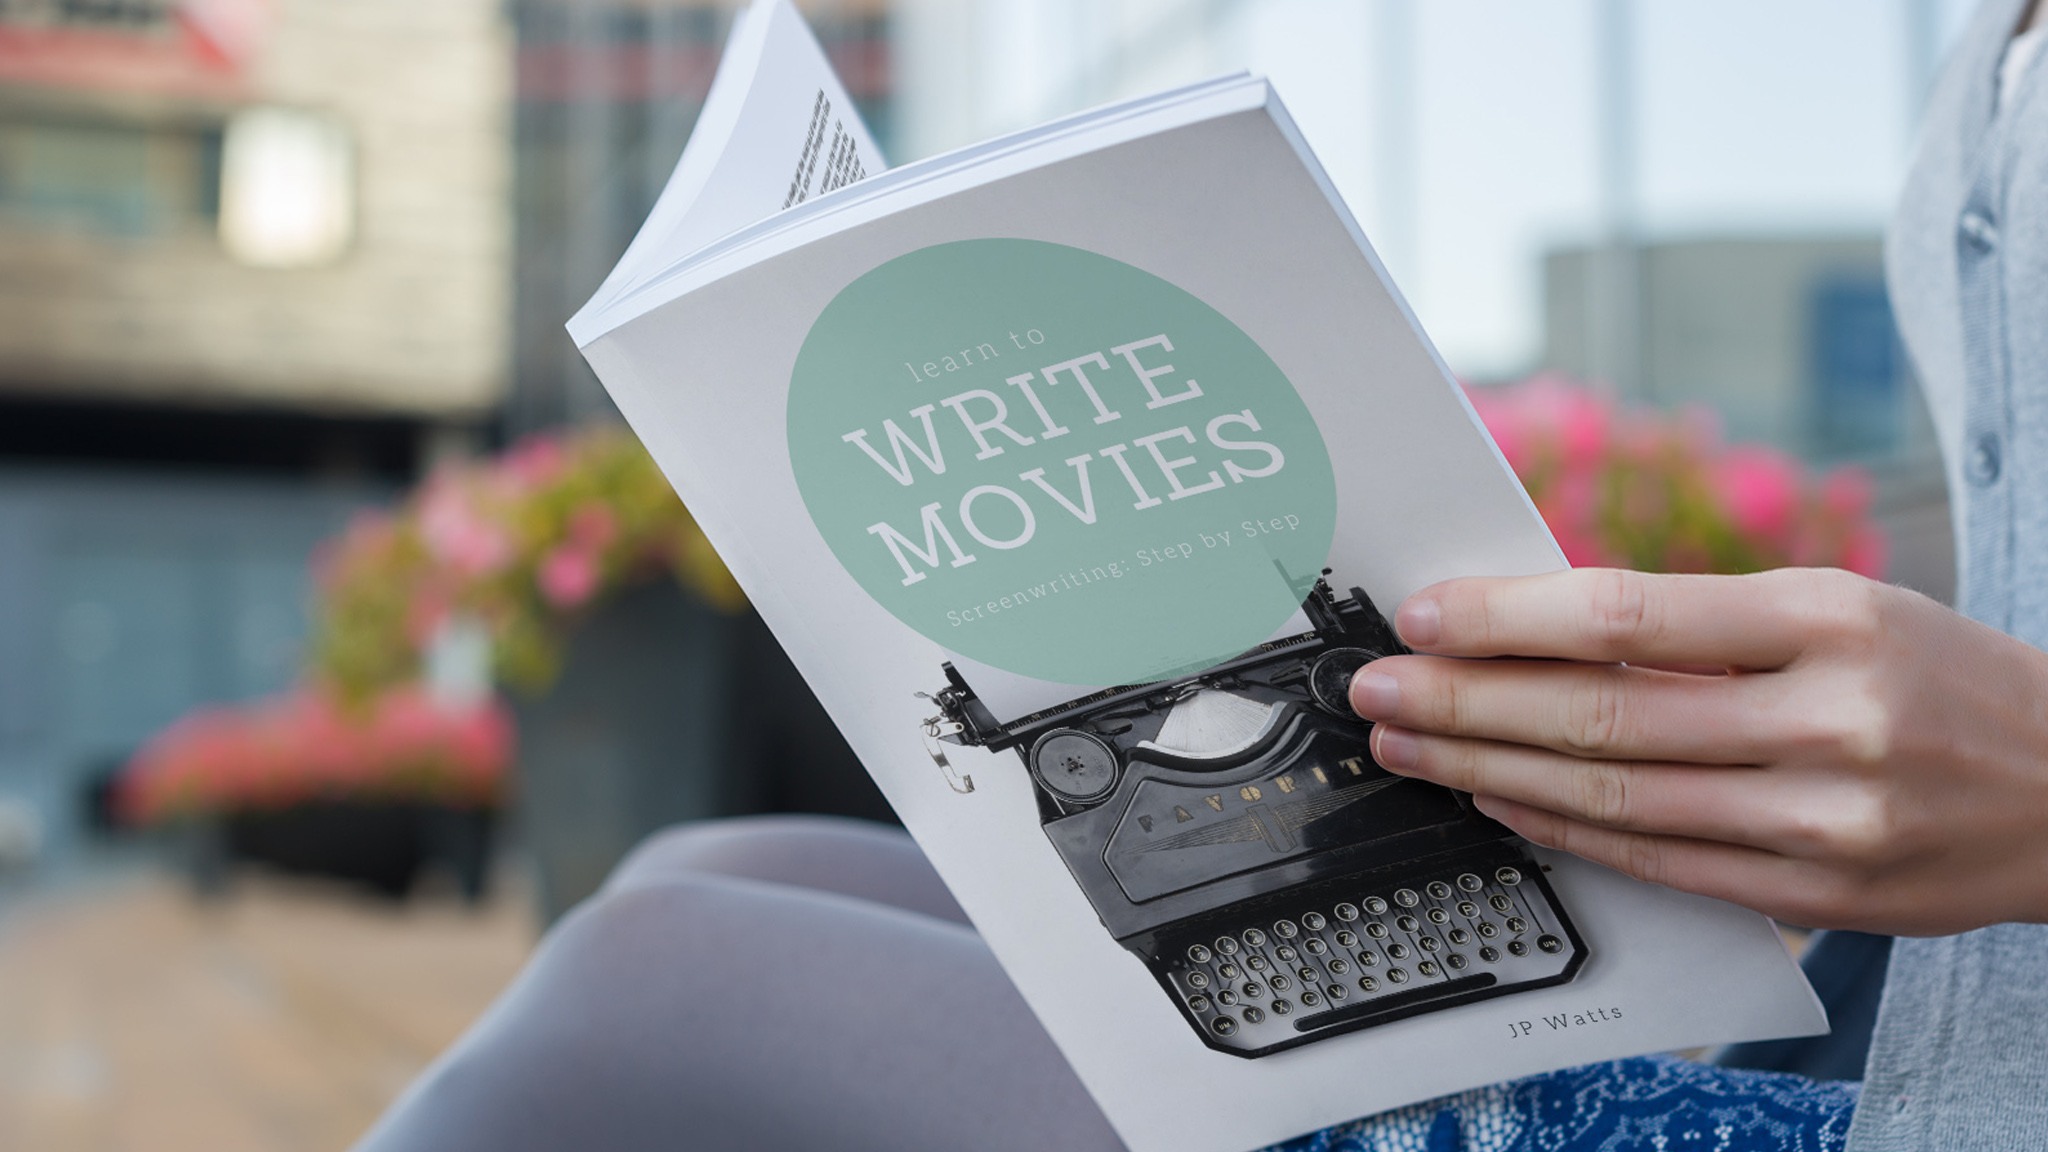 Learn to Write Movies: Screenwriting from start to finish